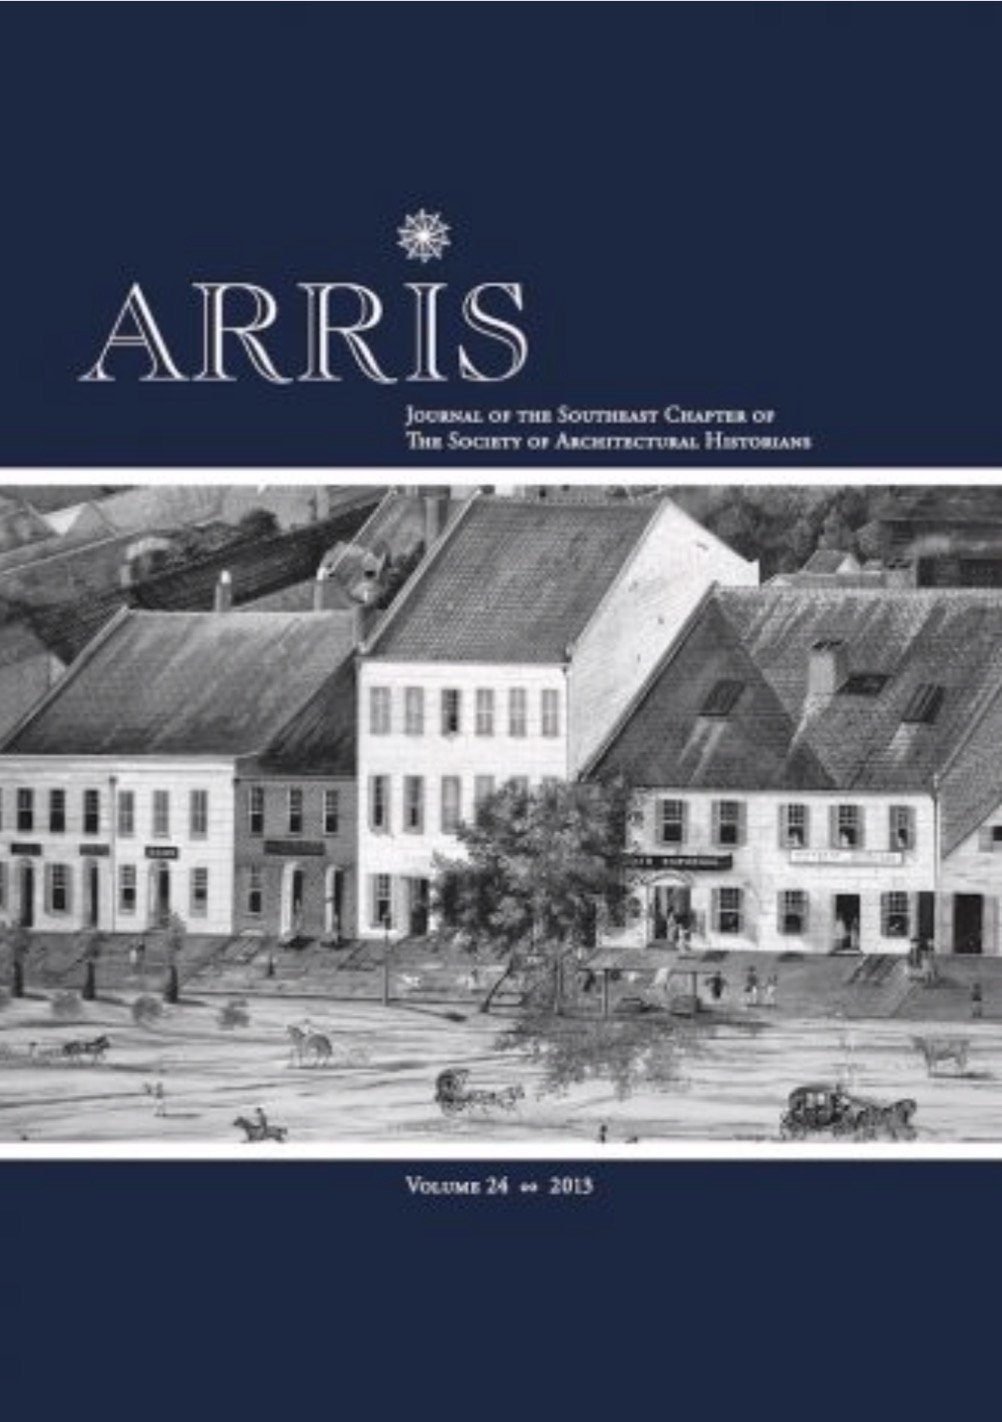 2020 ARRIS Call for Article Submissions